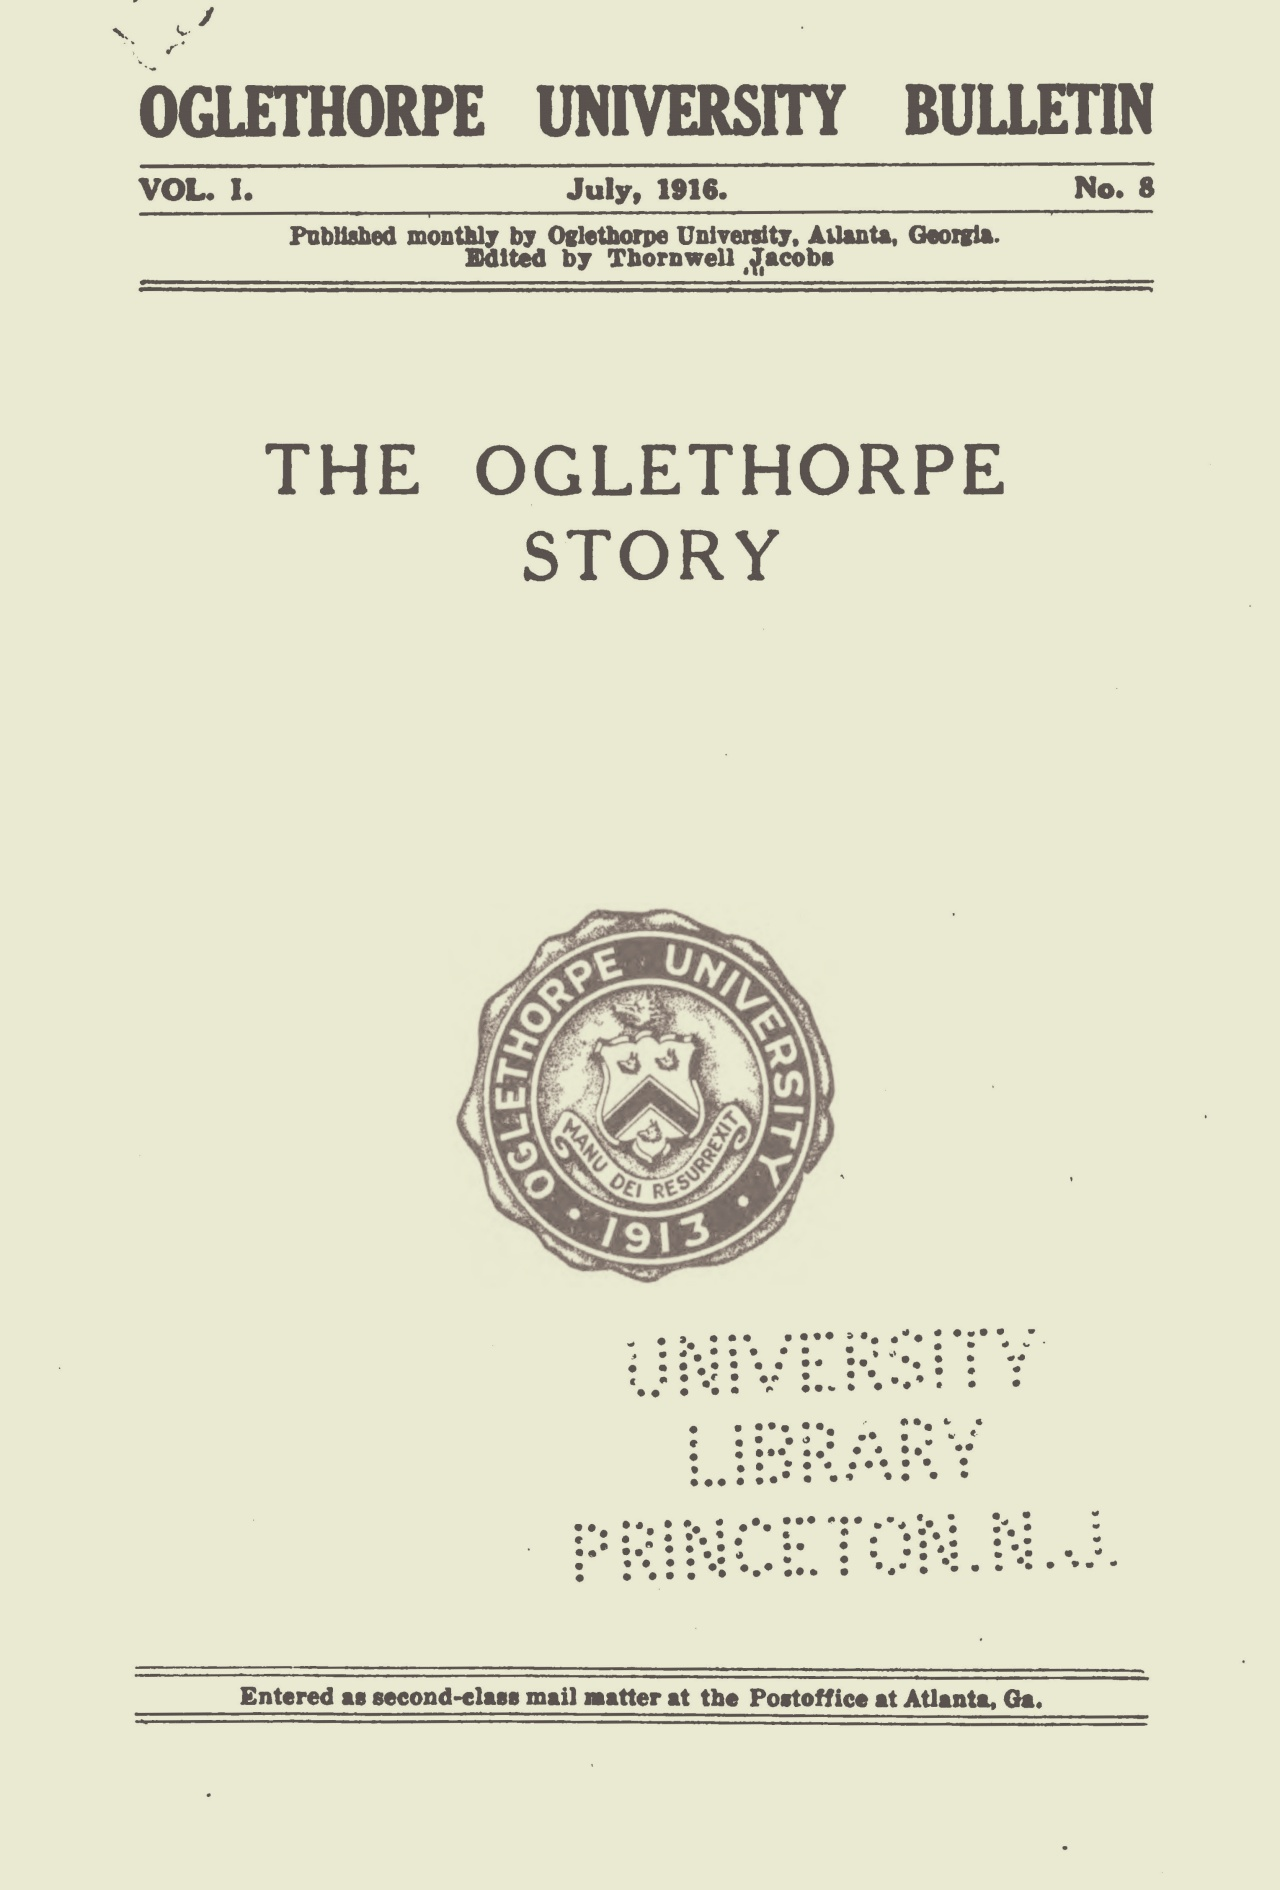 Jacobs, Thornwell, The Oglethorpe Story Title Page.jpg